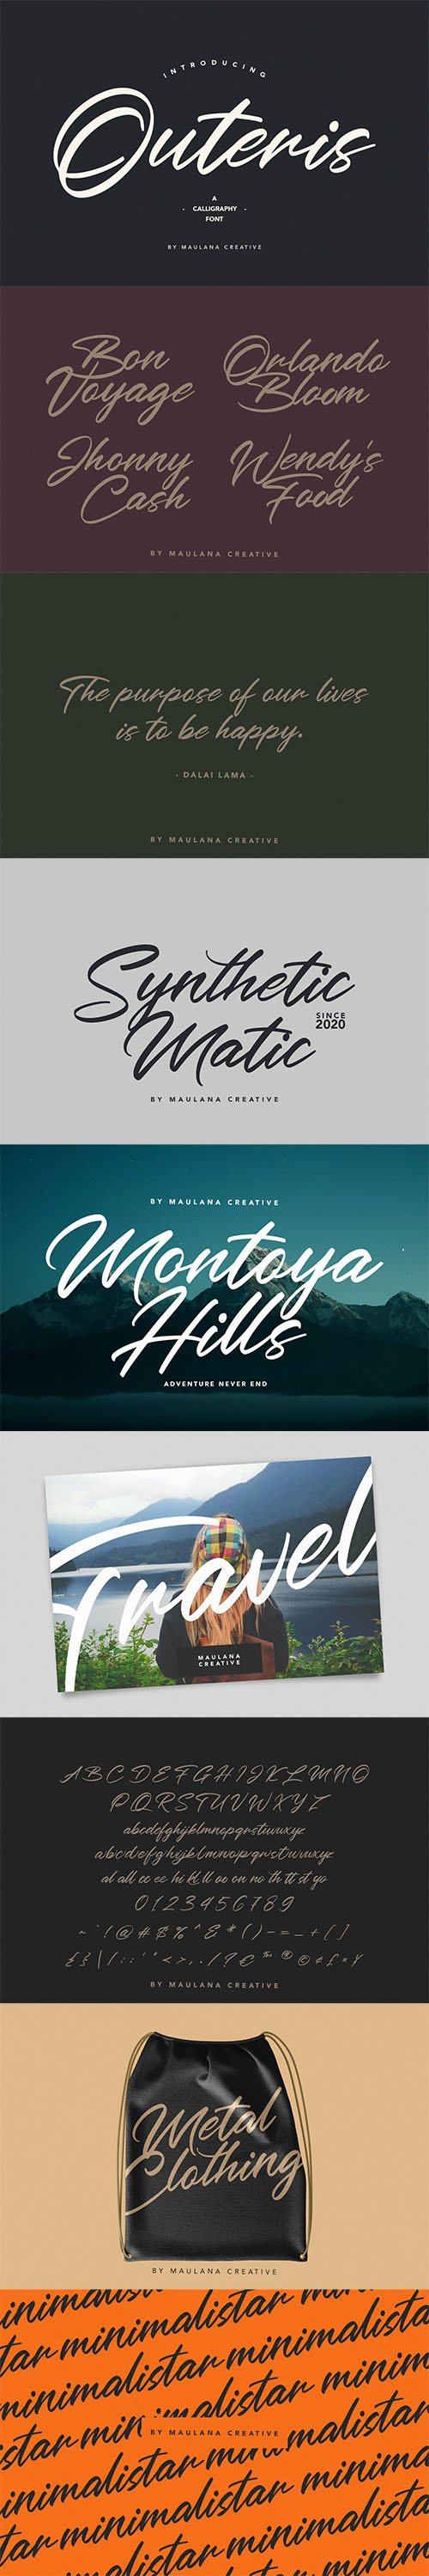 Outeris Calligraphy Font